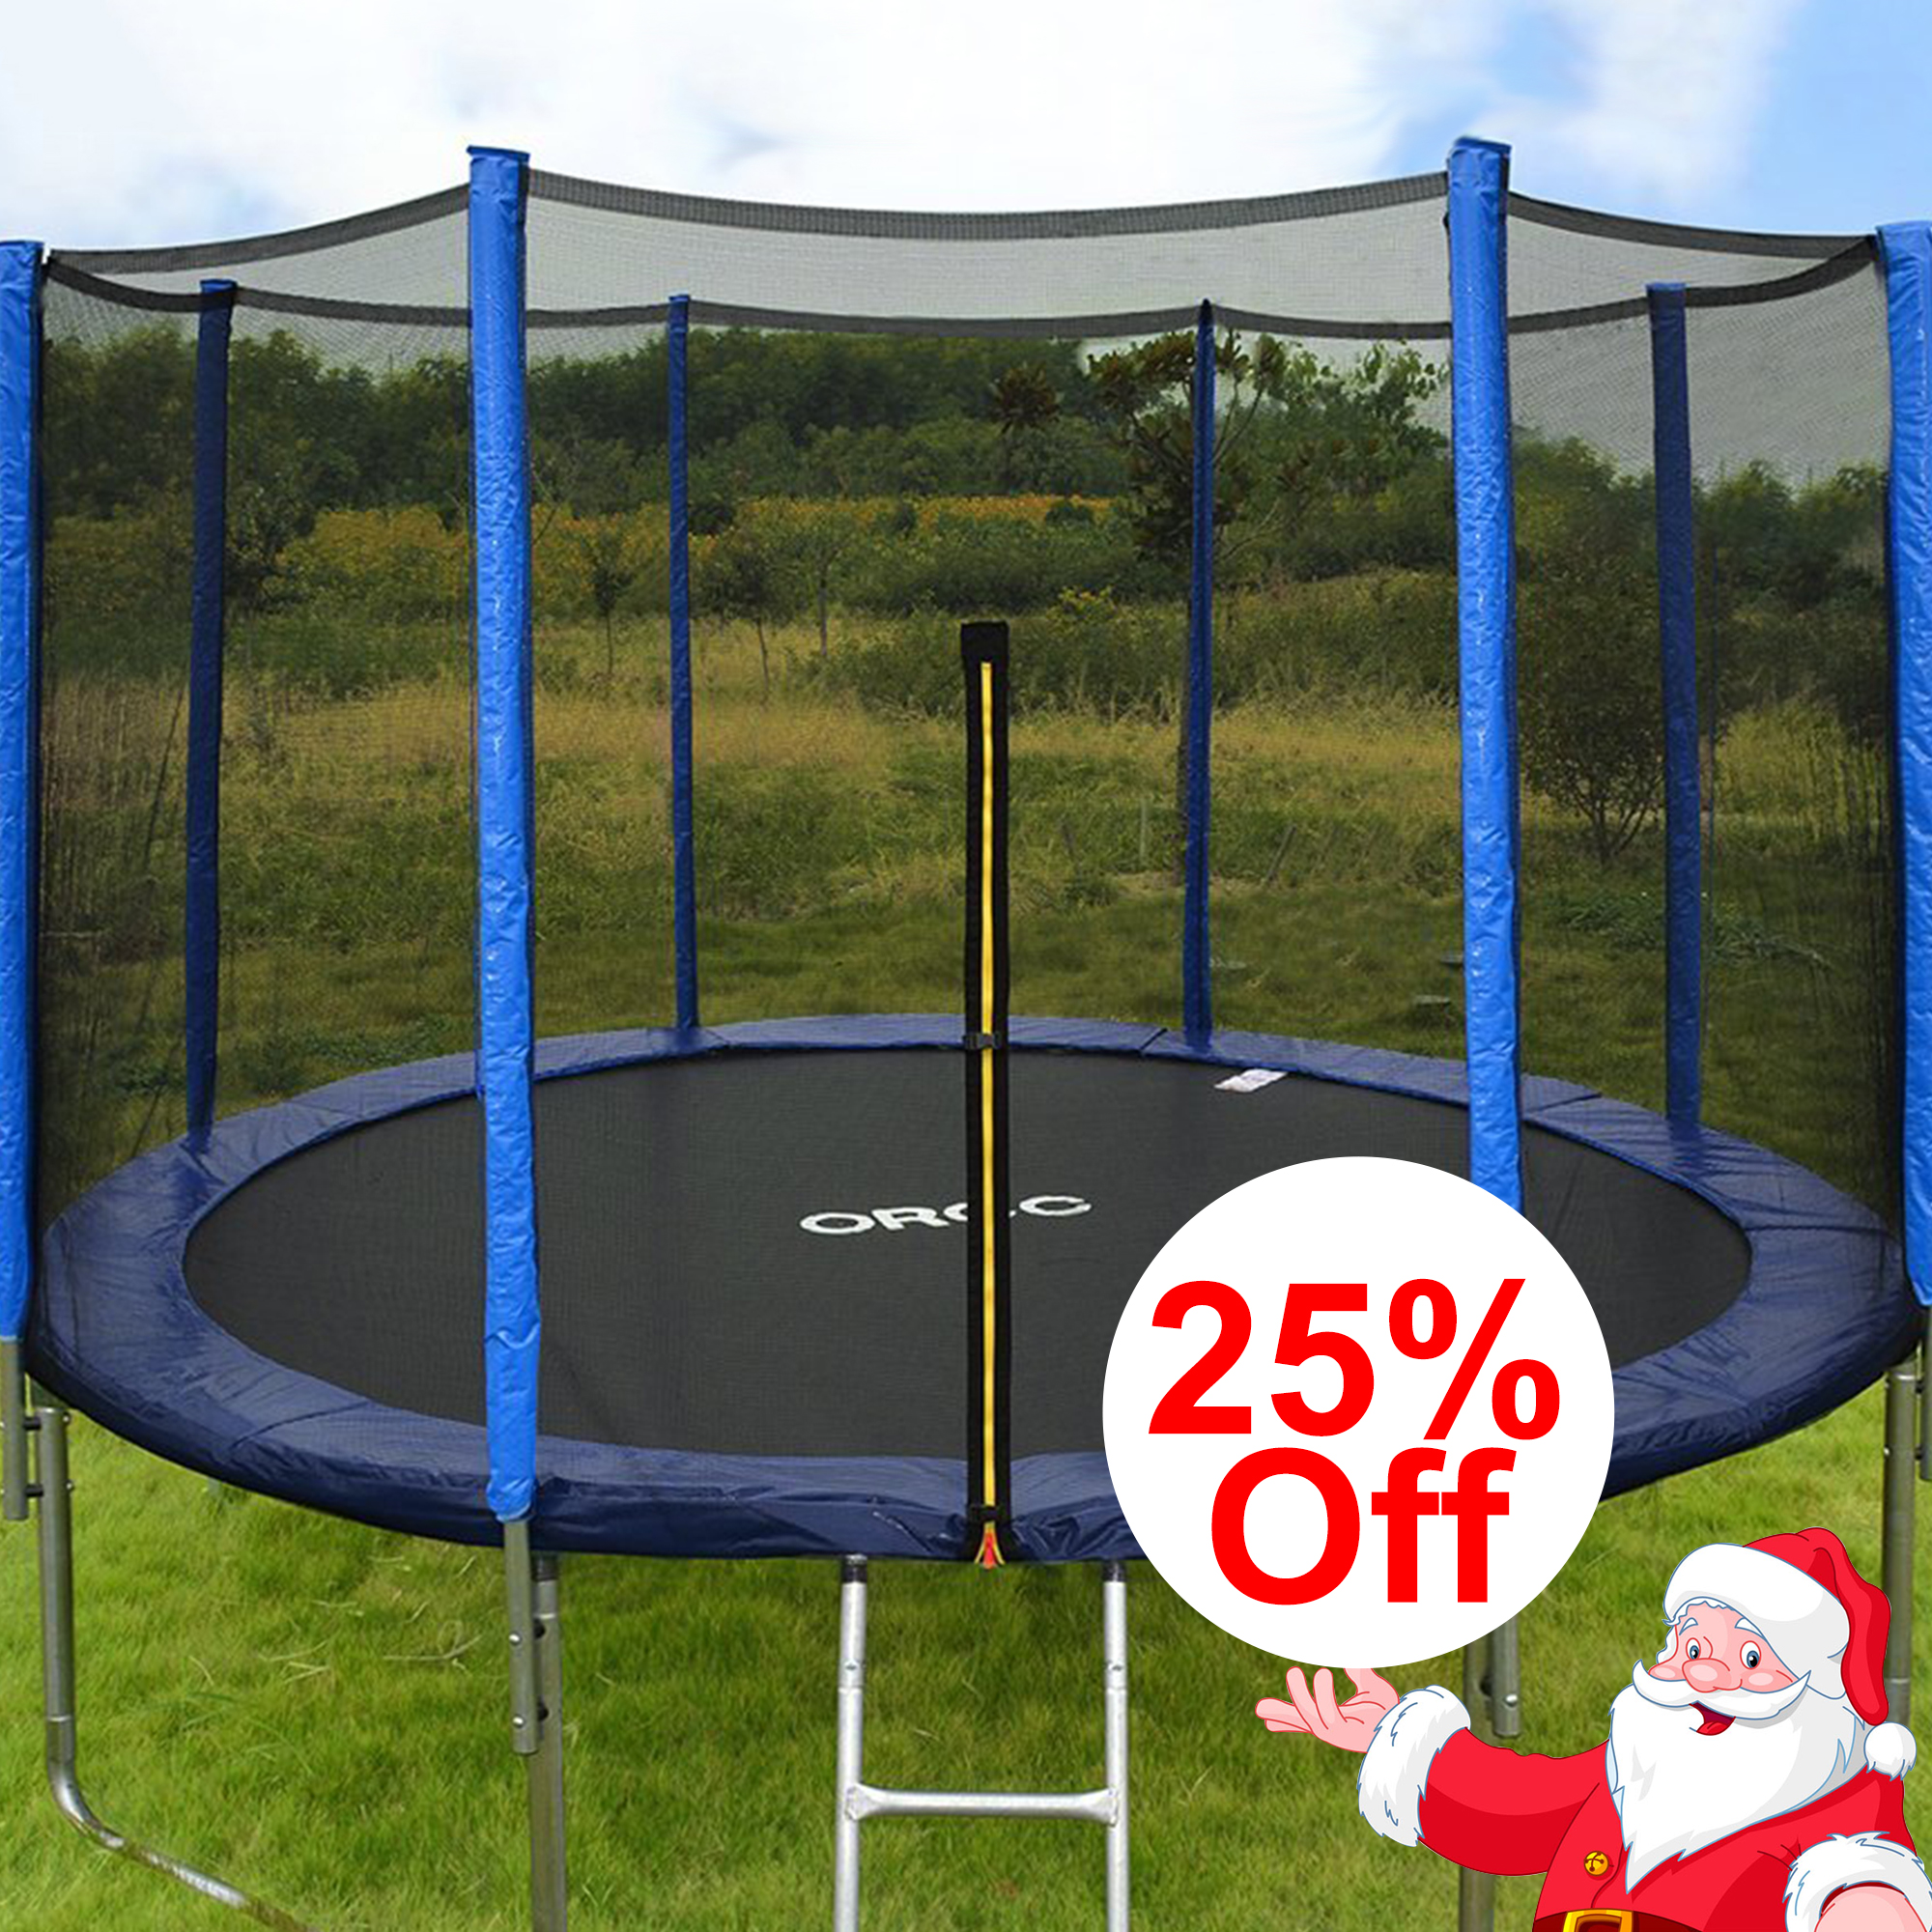 ORCC 12' 15' Trampoline with Enclosure, Ladder, Wind Stakes & Rain Cover - Blue/Green, Round